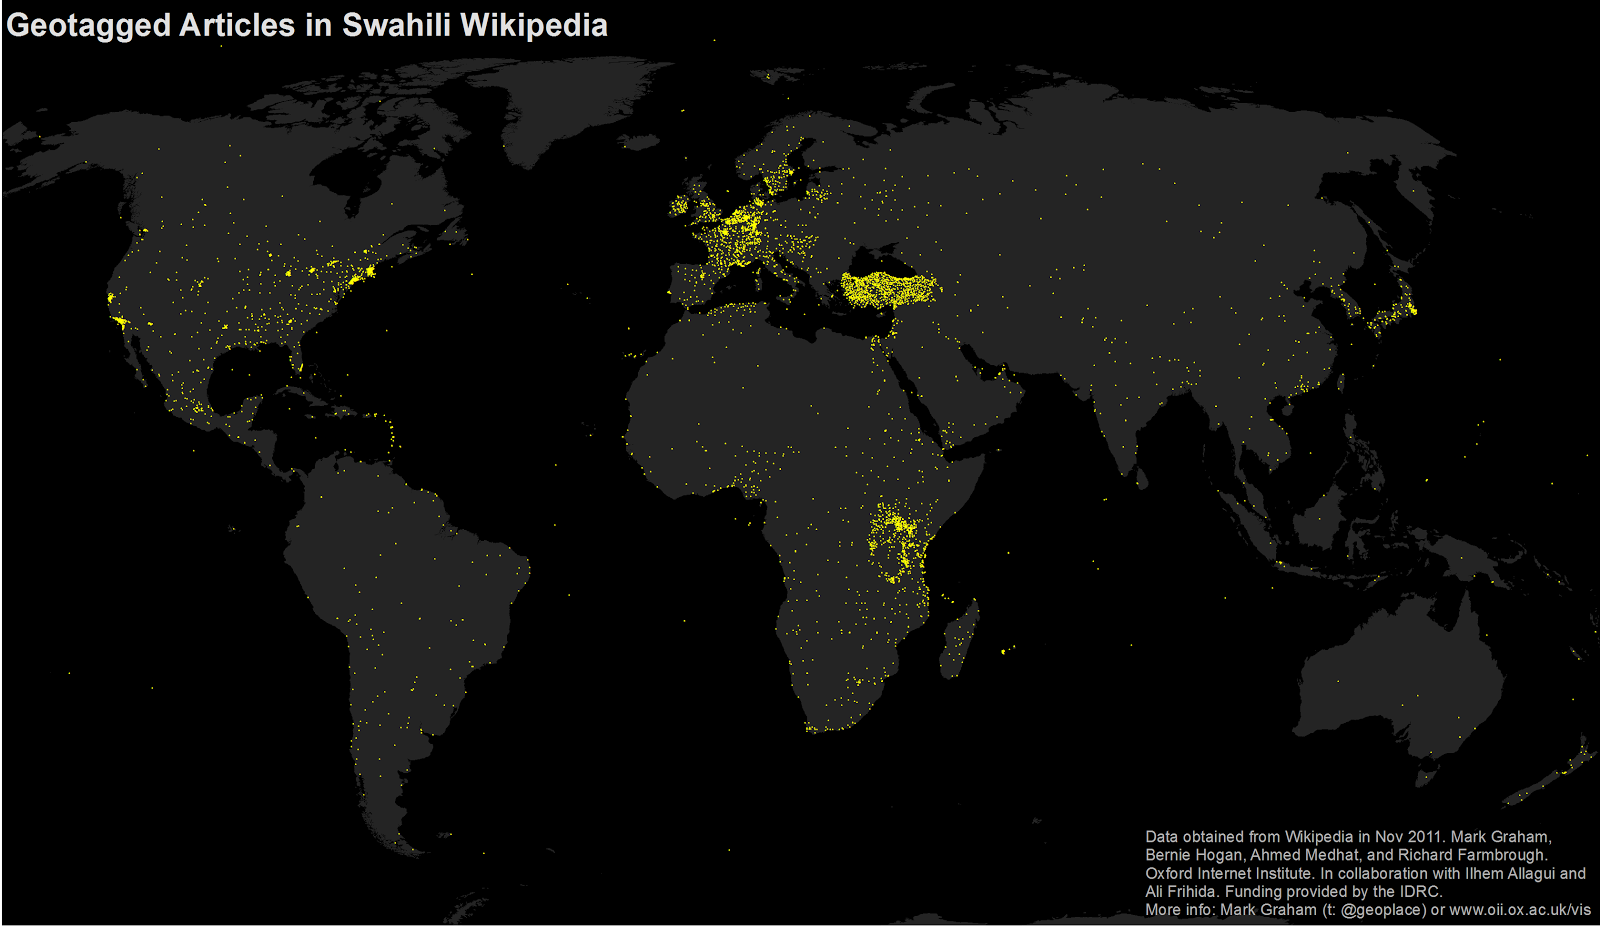 Drilling down into maps of swahili wikipedia mark graham however that map only tells part of the story all articles are treated equally and represented by bright yellow dots what if we instead shade each gumiabroncs Choice Image